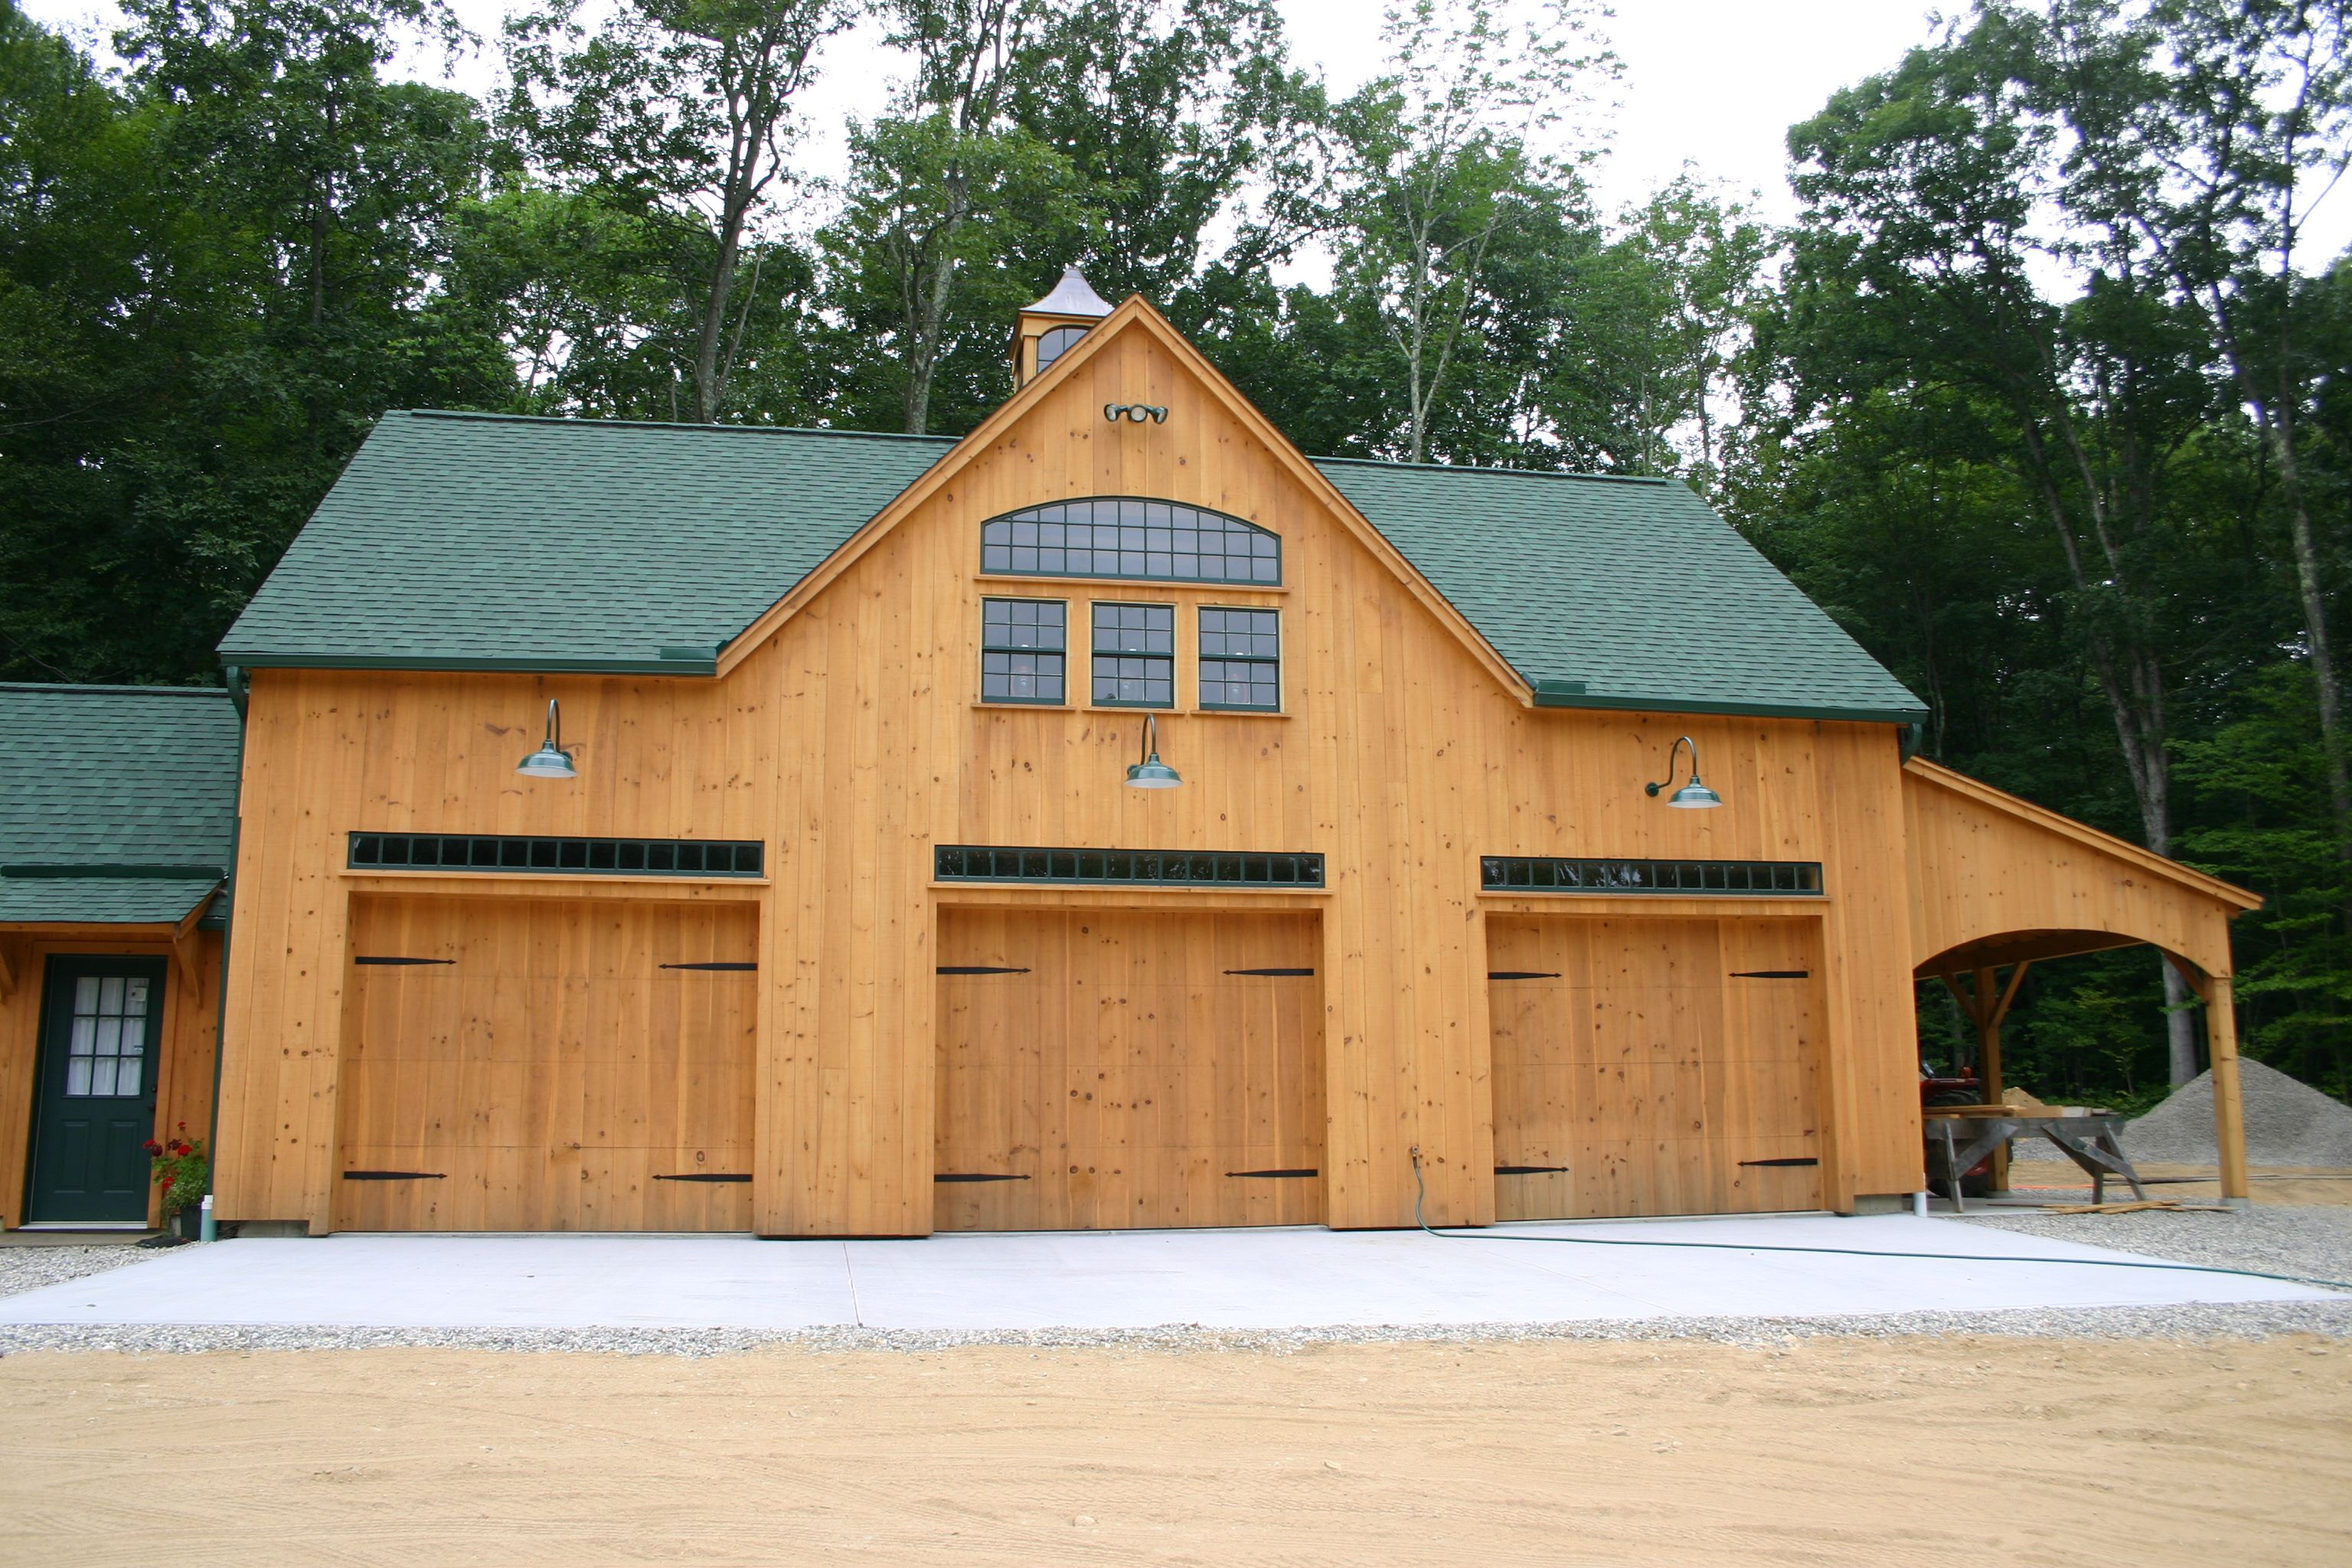 Our 26 X 42 1 1 2 Story Barn With 12 X 42 Enclosed Lean To And Peak Dormer Www Countrycarpenters Barn House Plans Pole Barn House Plans Carriage House Plans